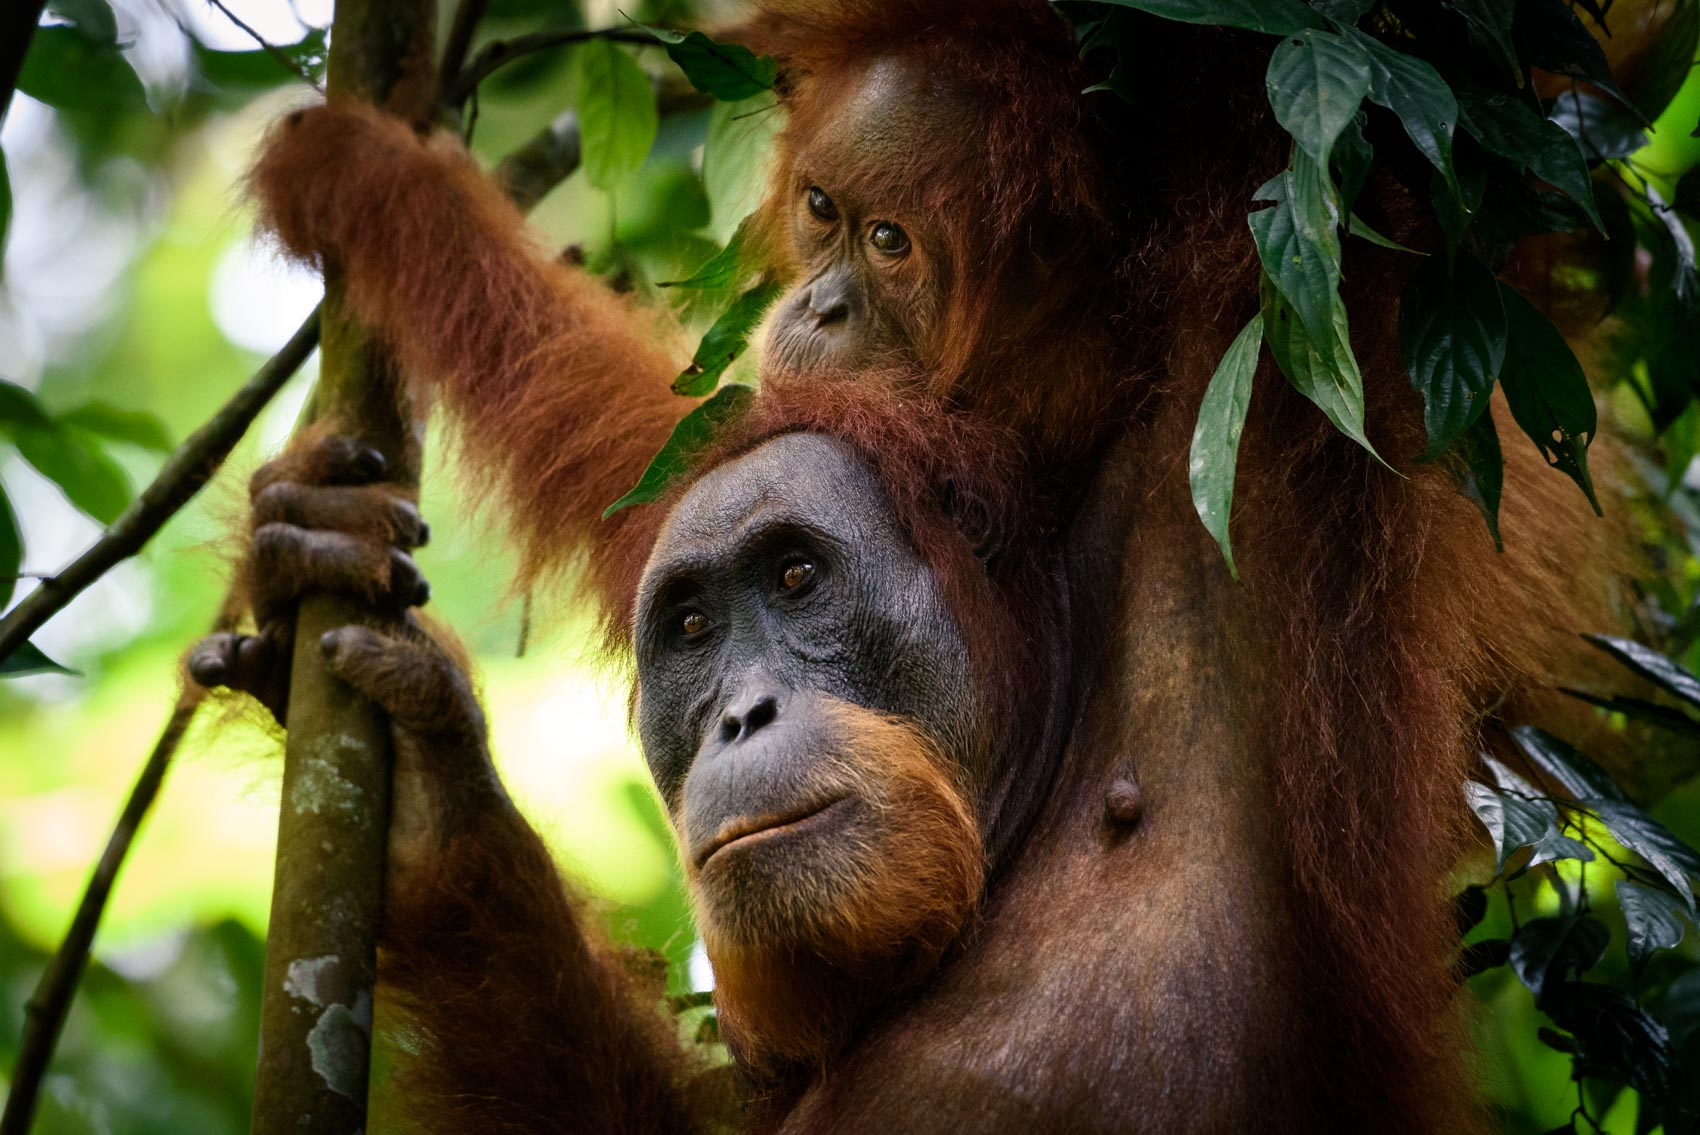 A female orangutan with her child hanging on top inside the Gunung Leuser National Park